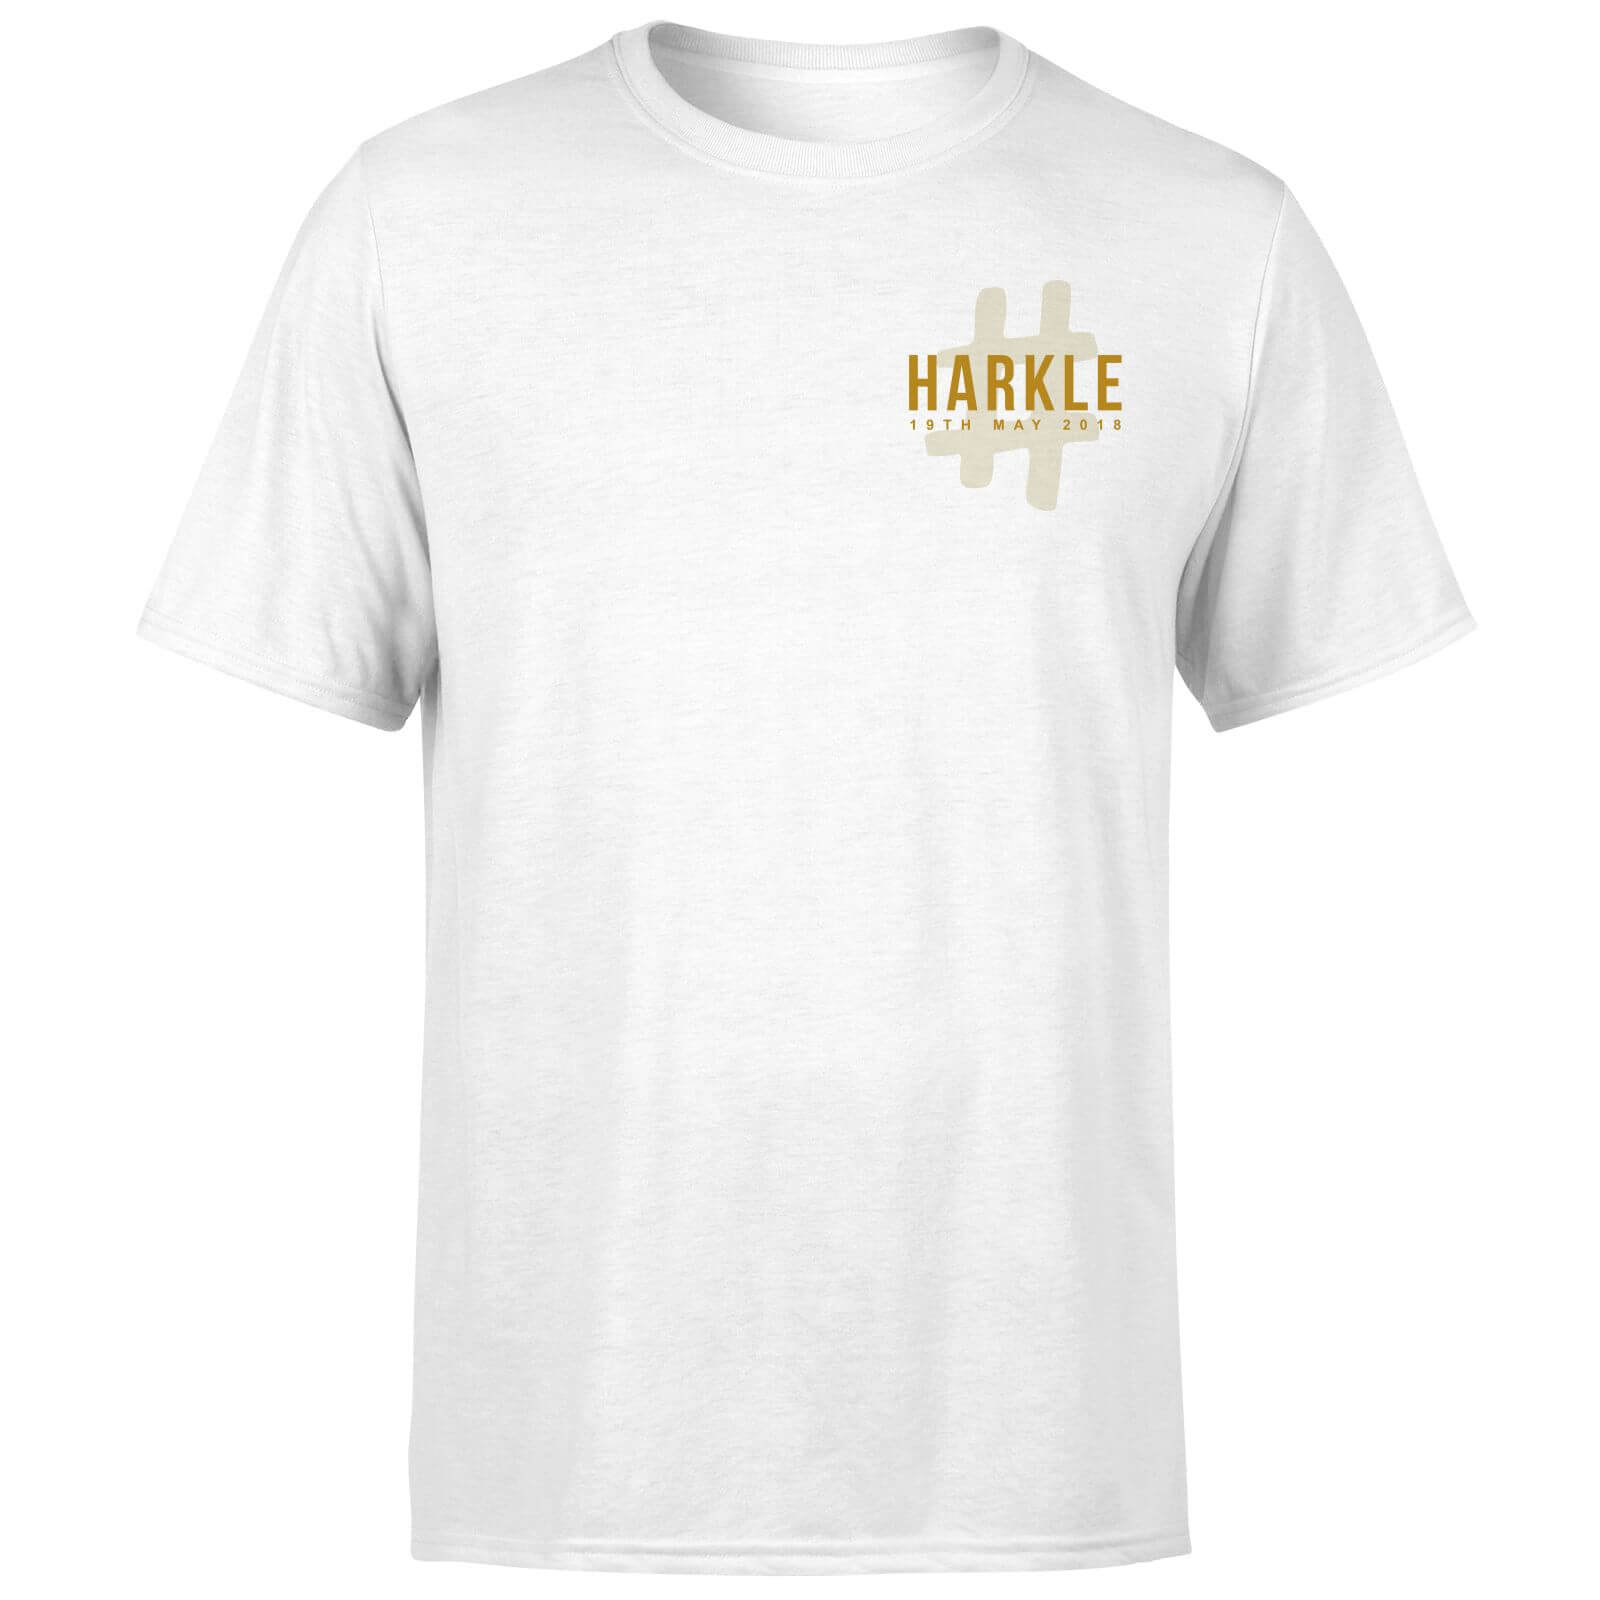 #Harkle T-Shirt - White